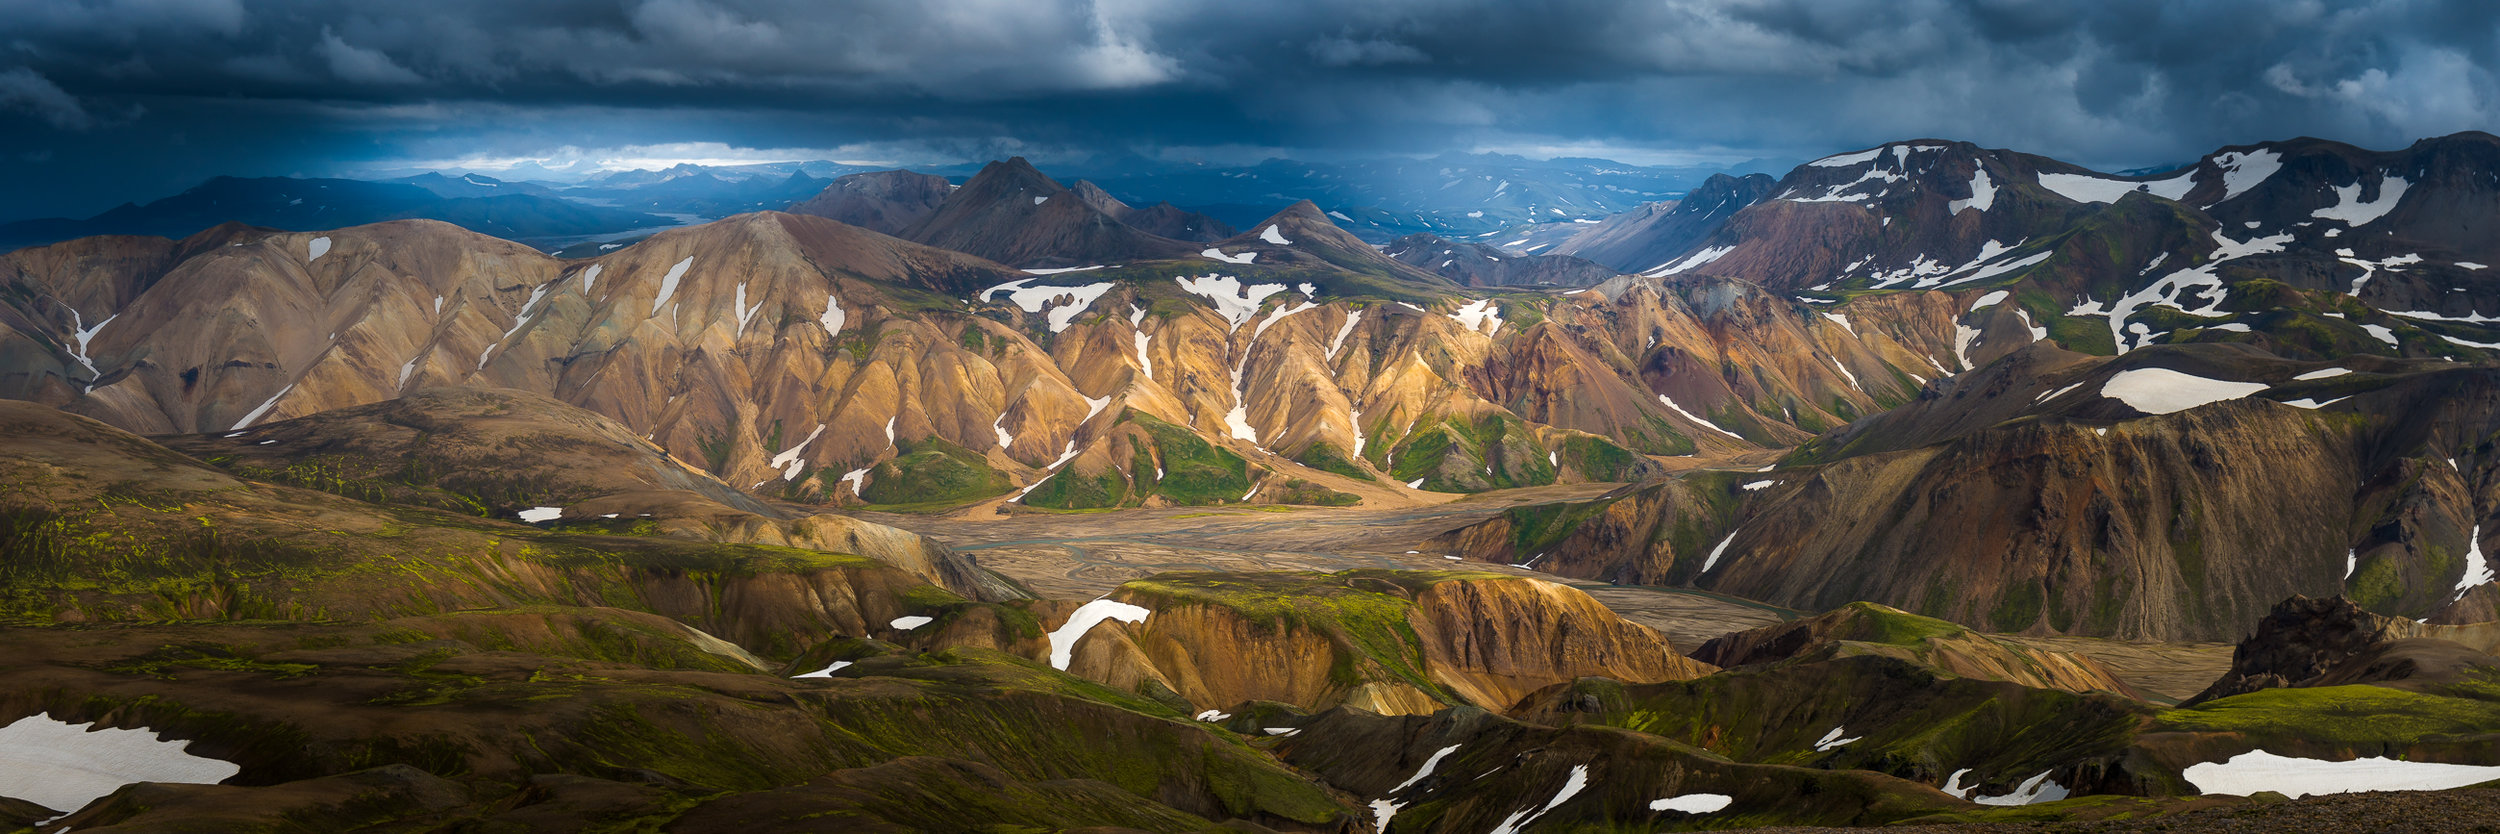 photo_workshop_iceland-3.jpg